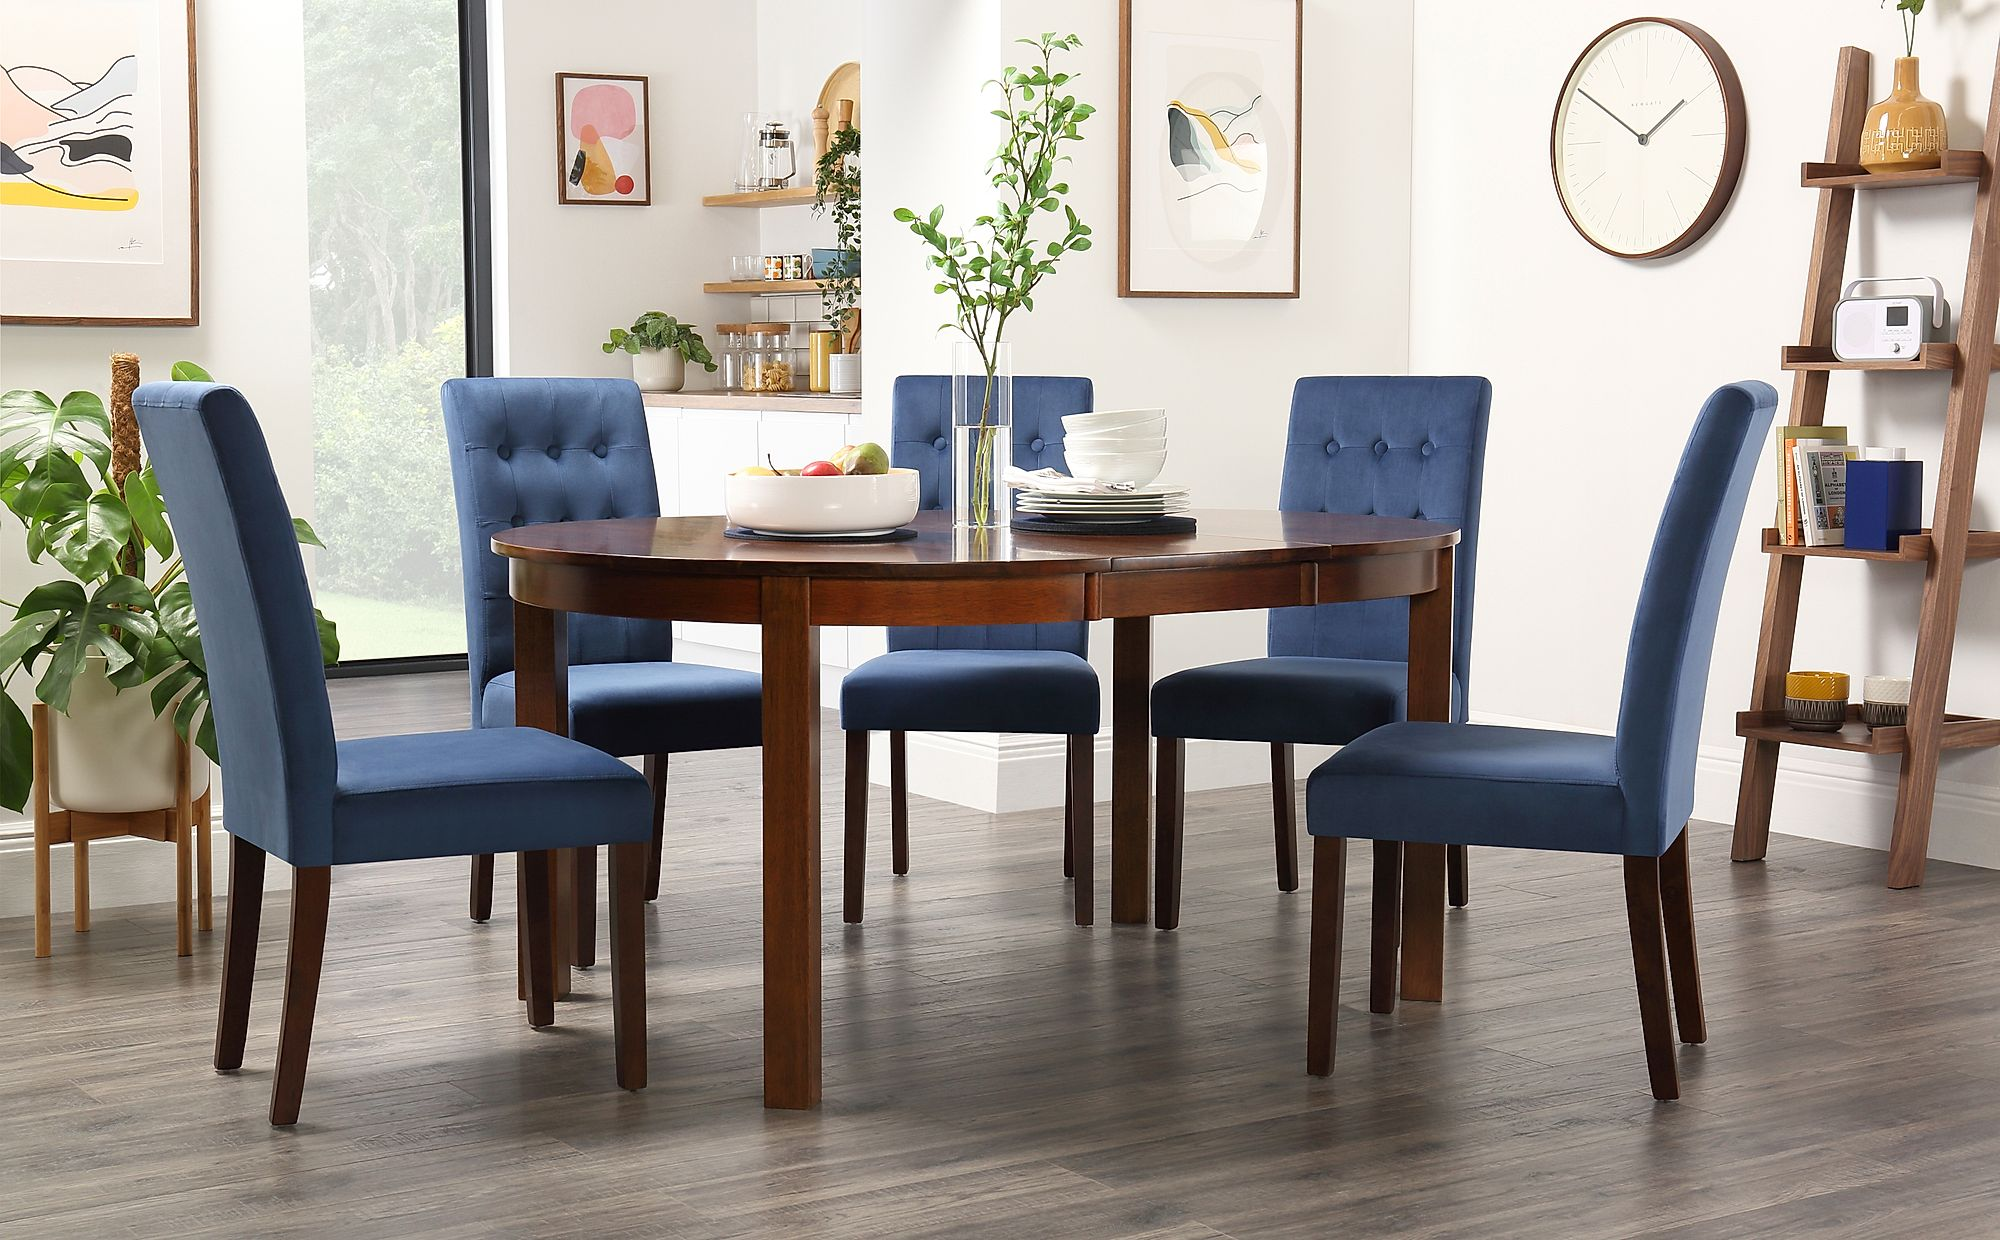 Surprising Details About Marlborough Round Dark Wood Extending Dining Table 4 6 Regent Blue Velvet Chairs Onthecornerstone Fun Painted Chair Ideas Images Onthecornerstoneorg